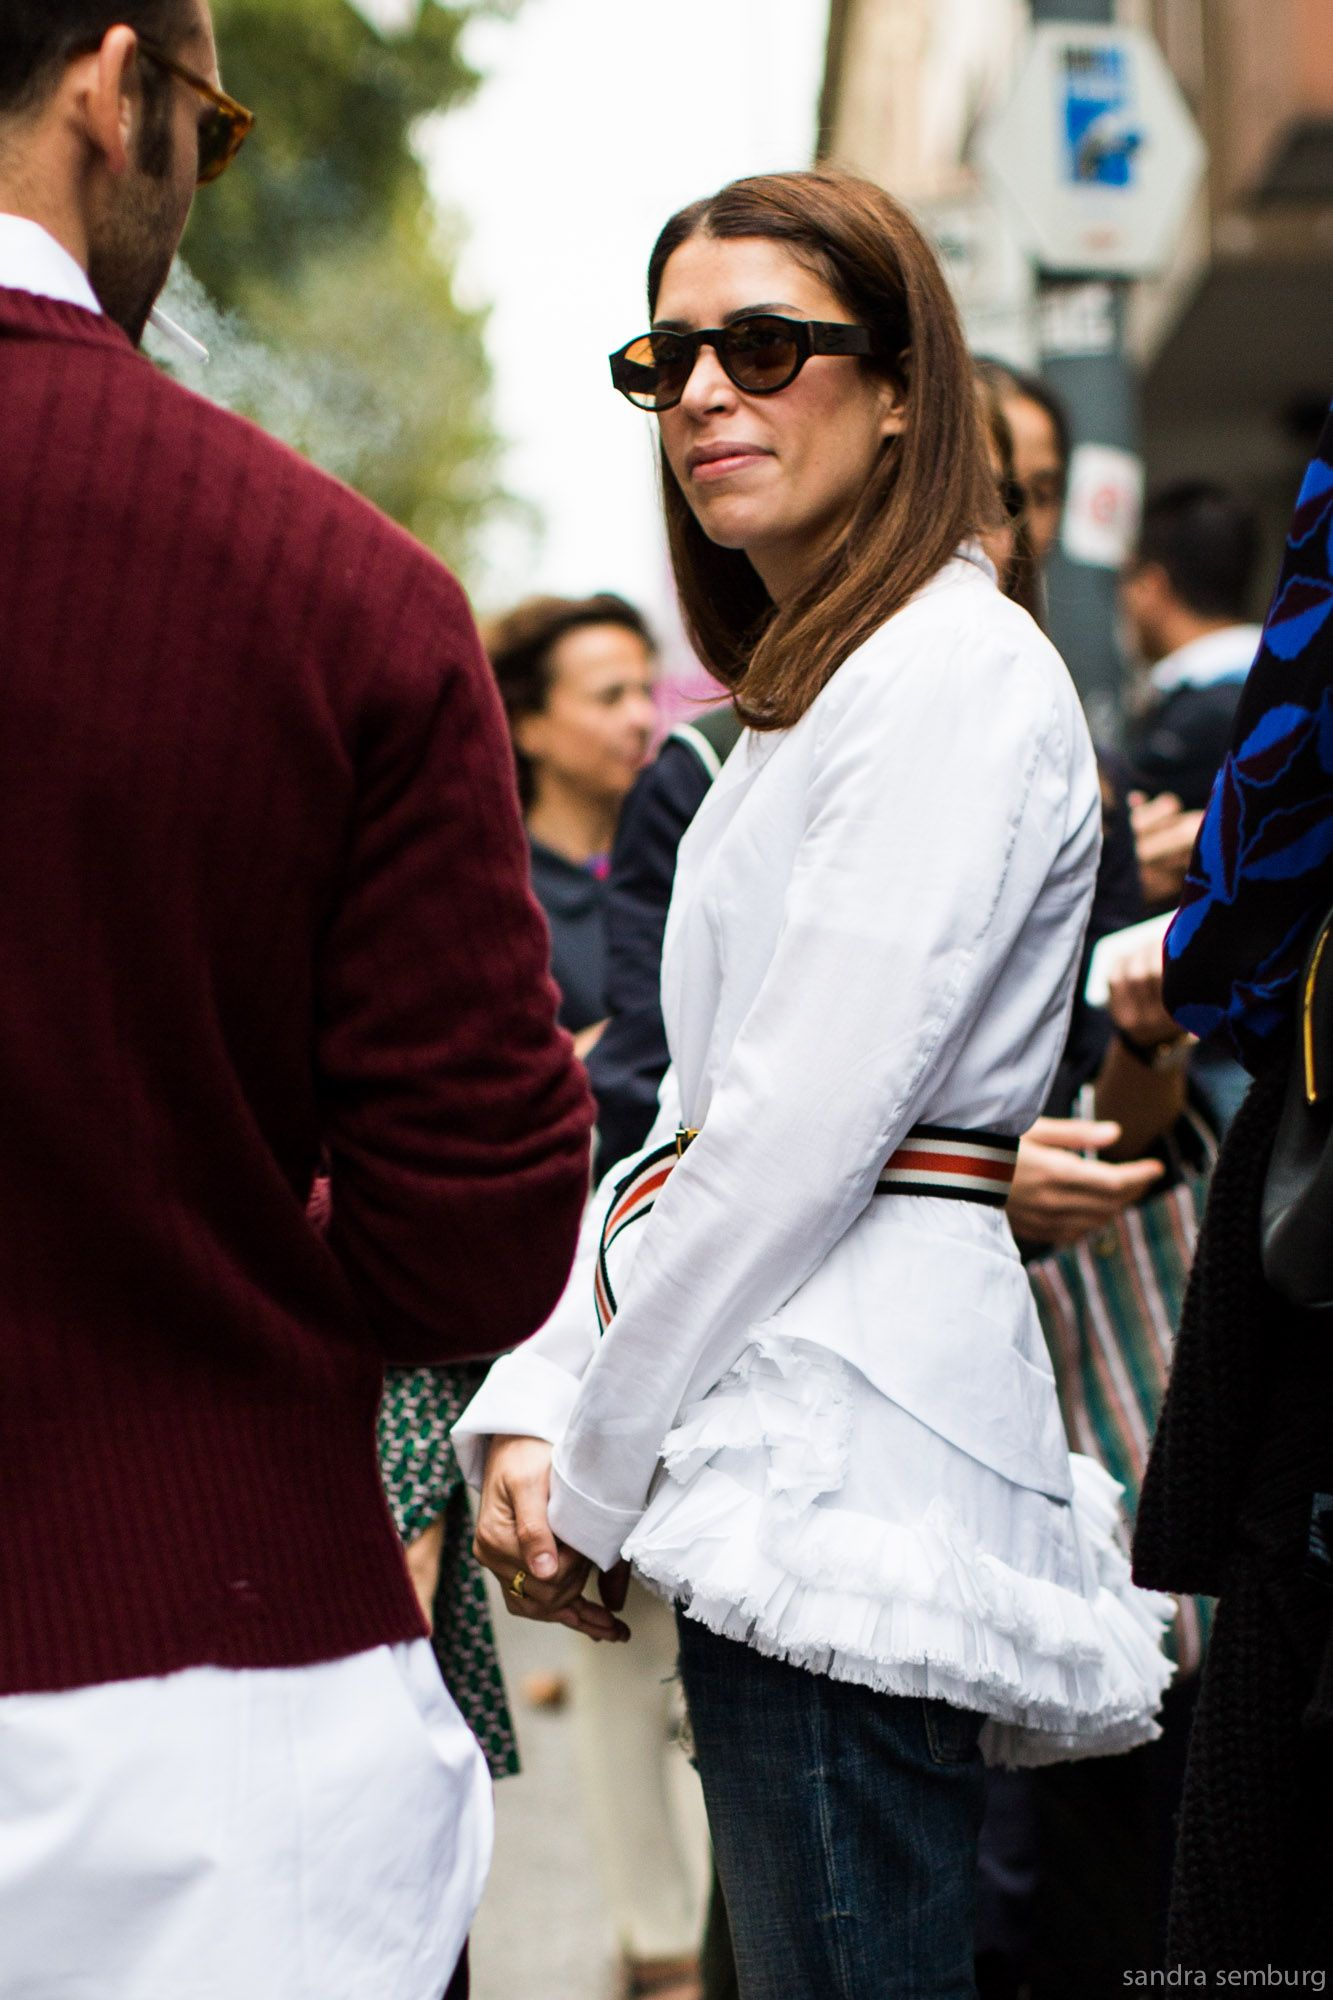 Milan Fashionweek day 5, 21 images | A Love is Blind